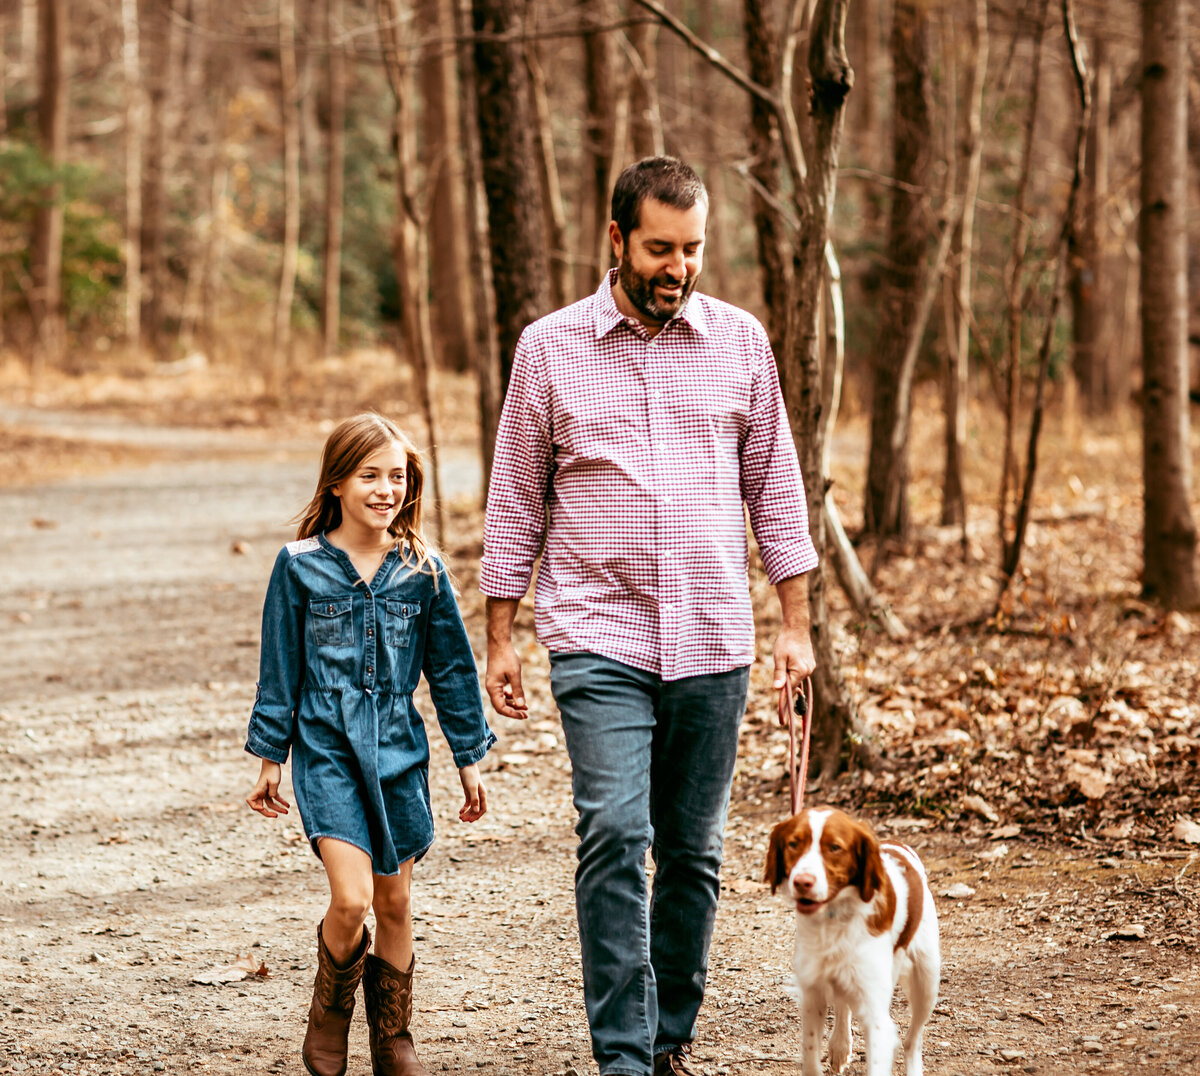 Father and Daughter walking in woods with dog